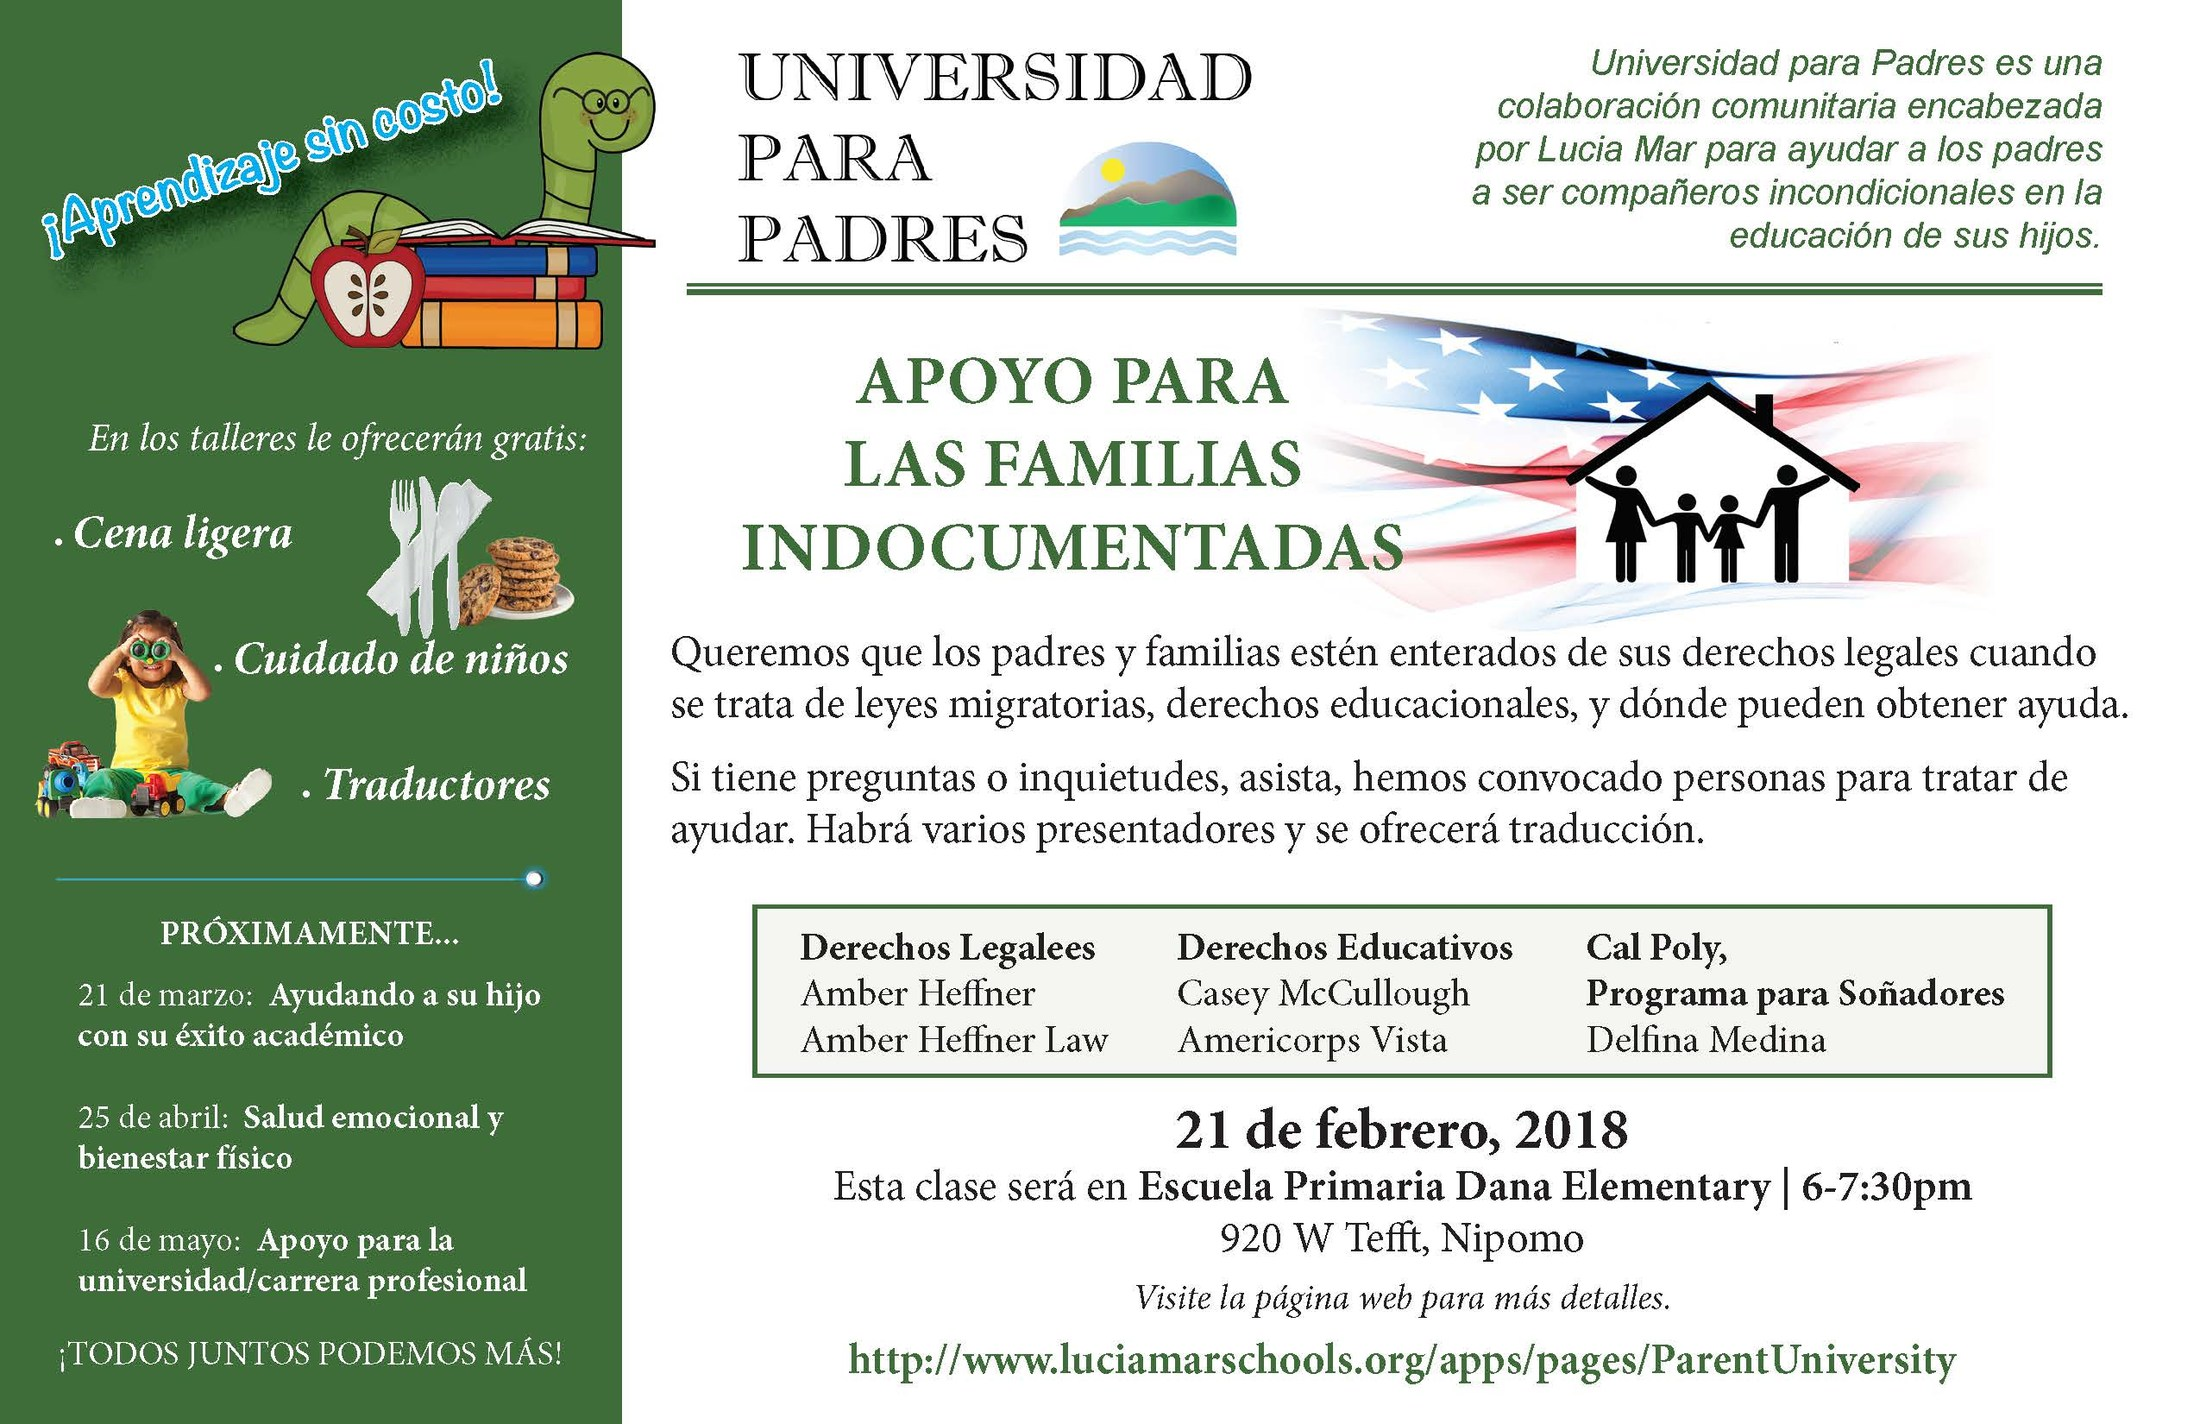 flyer for undocumented families